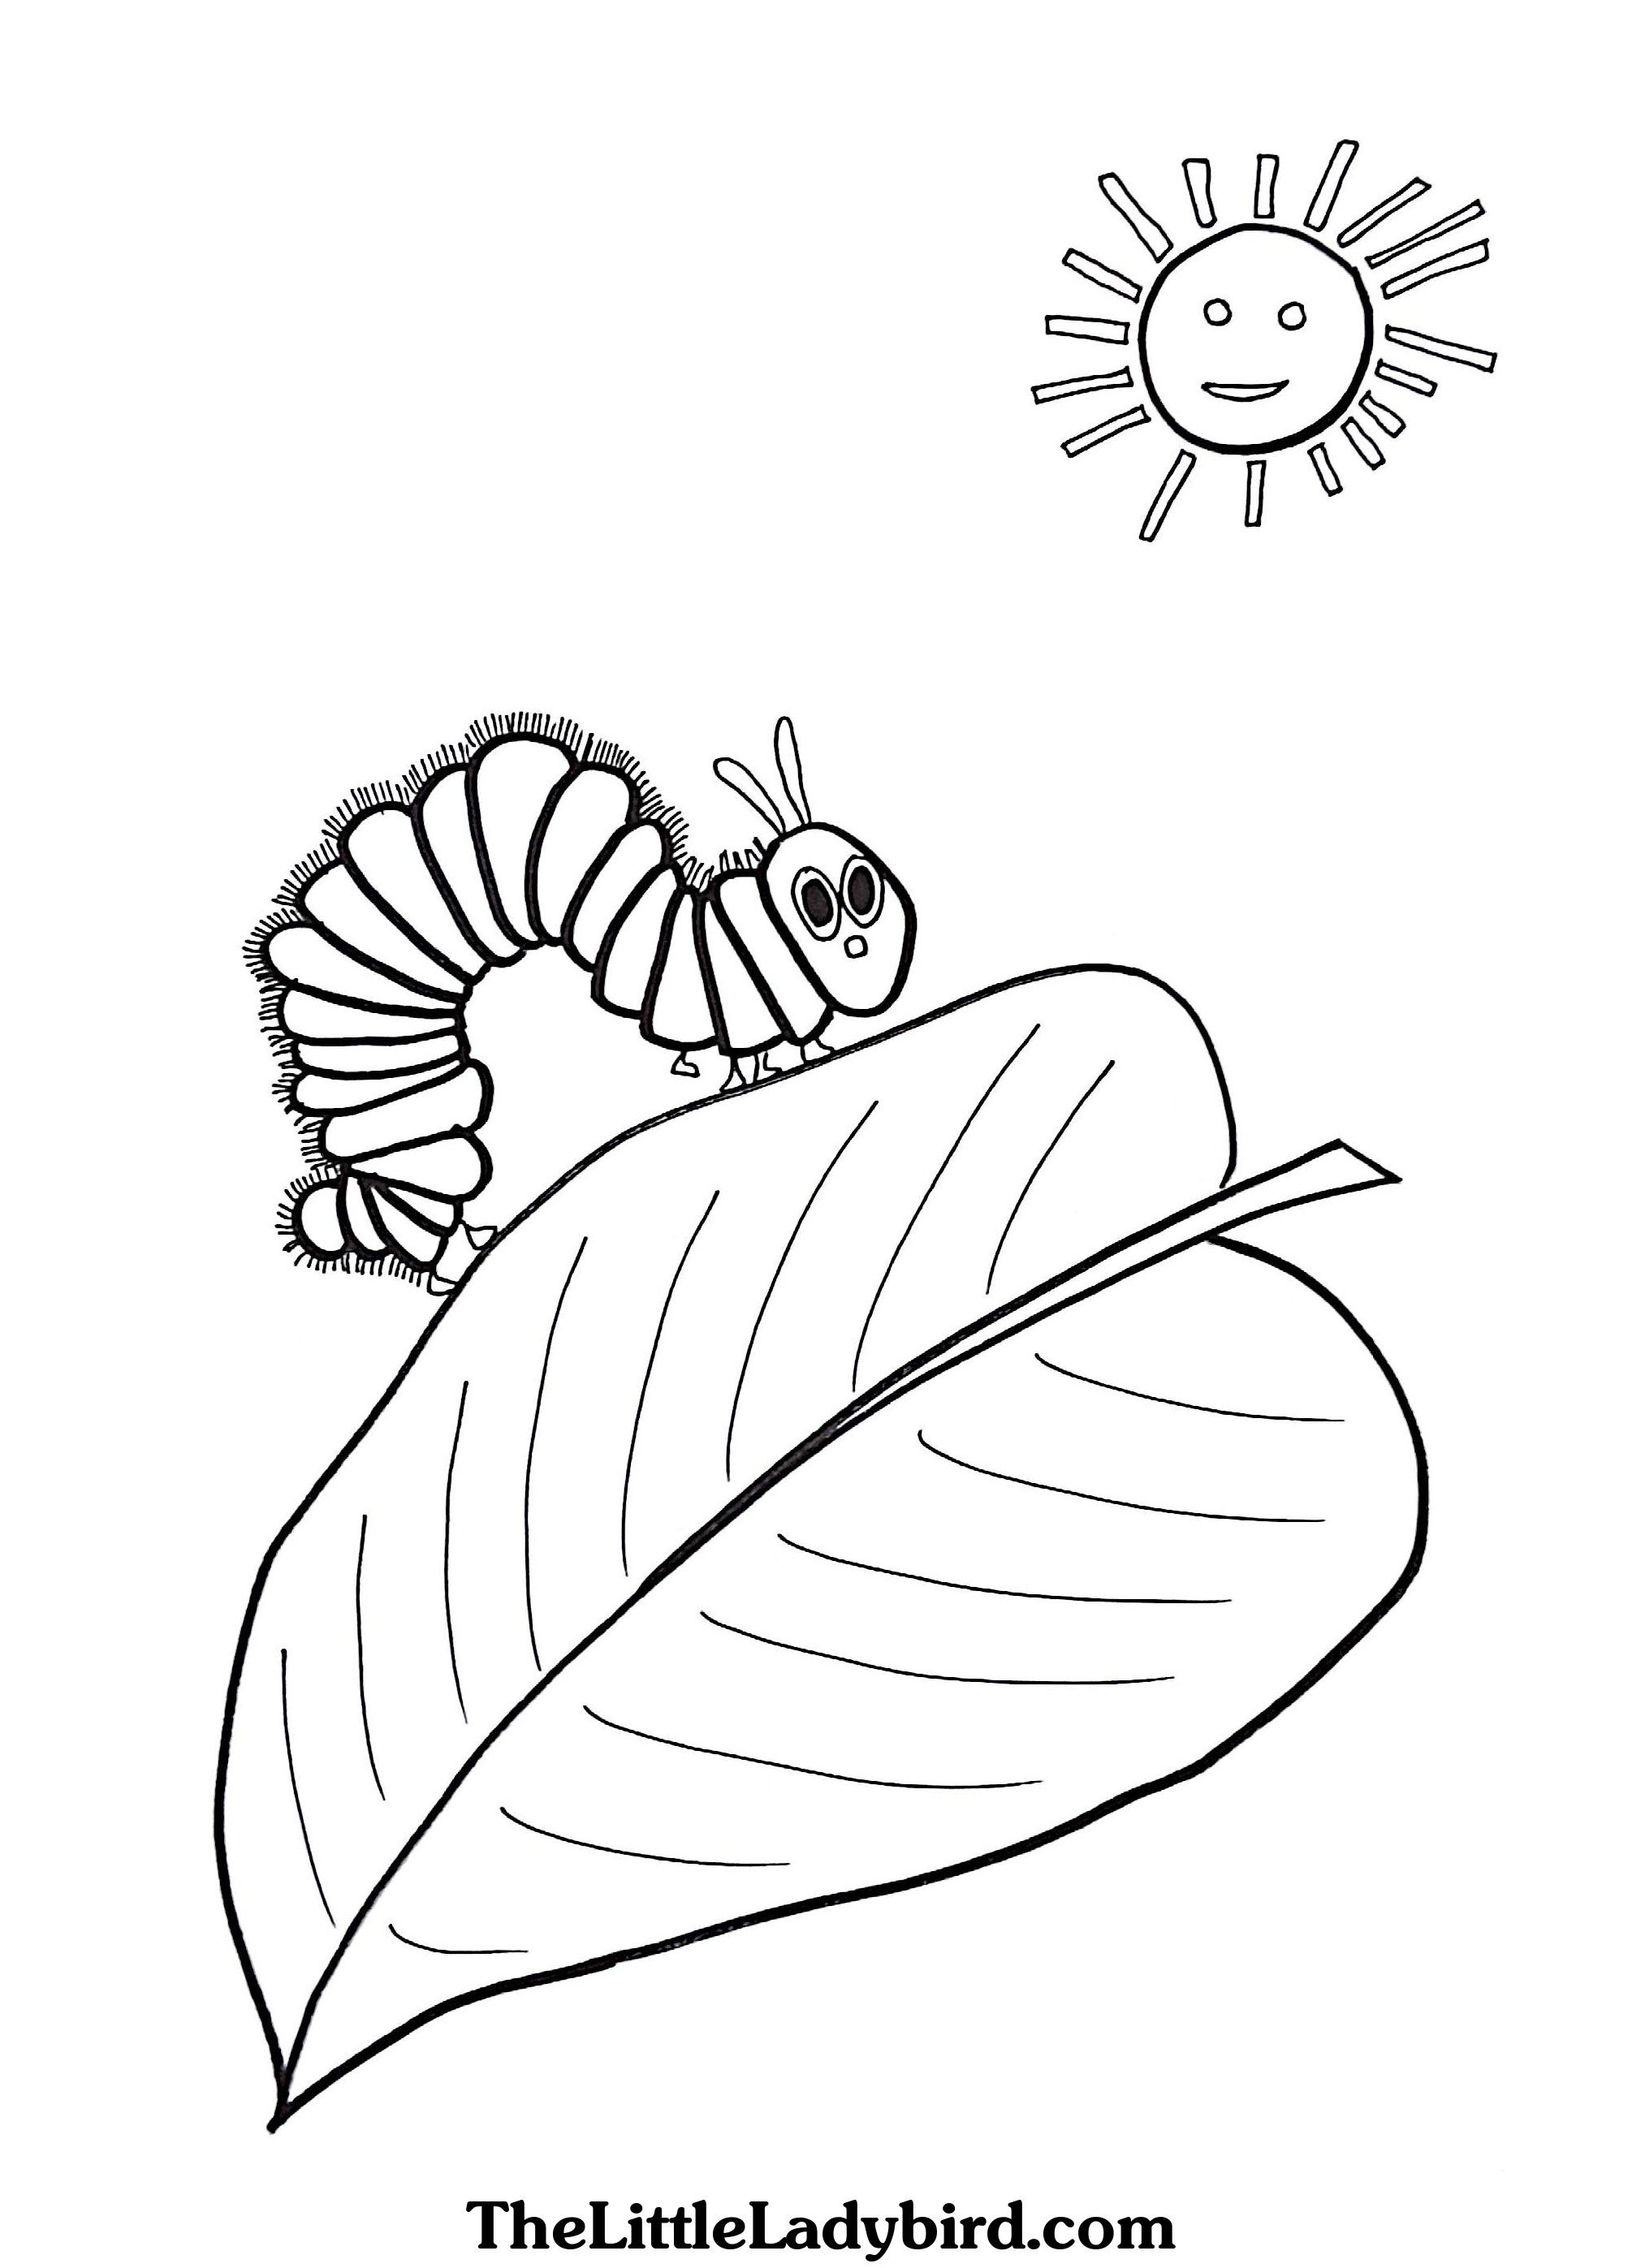 the hungry caterpillar coloring page get this the very hungry caterpillar coloring pages free the page coloring hungry caterpillar